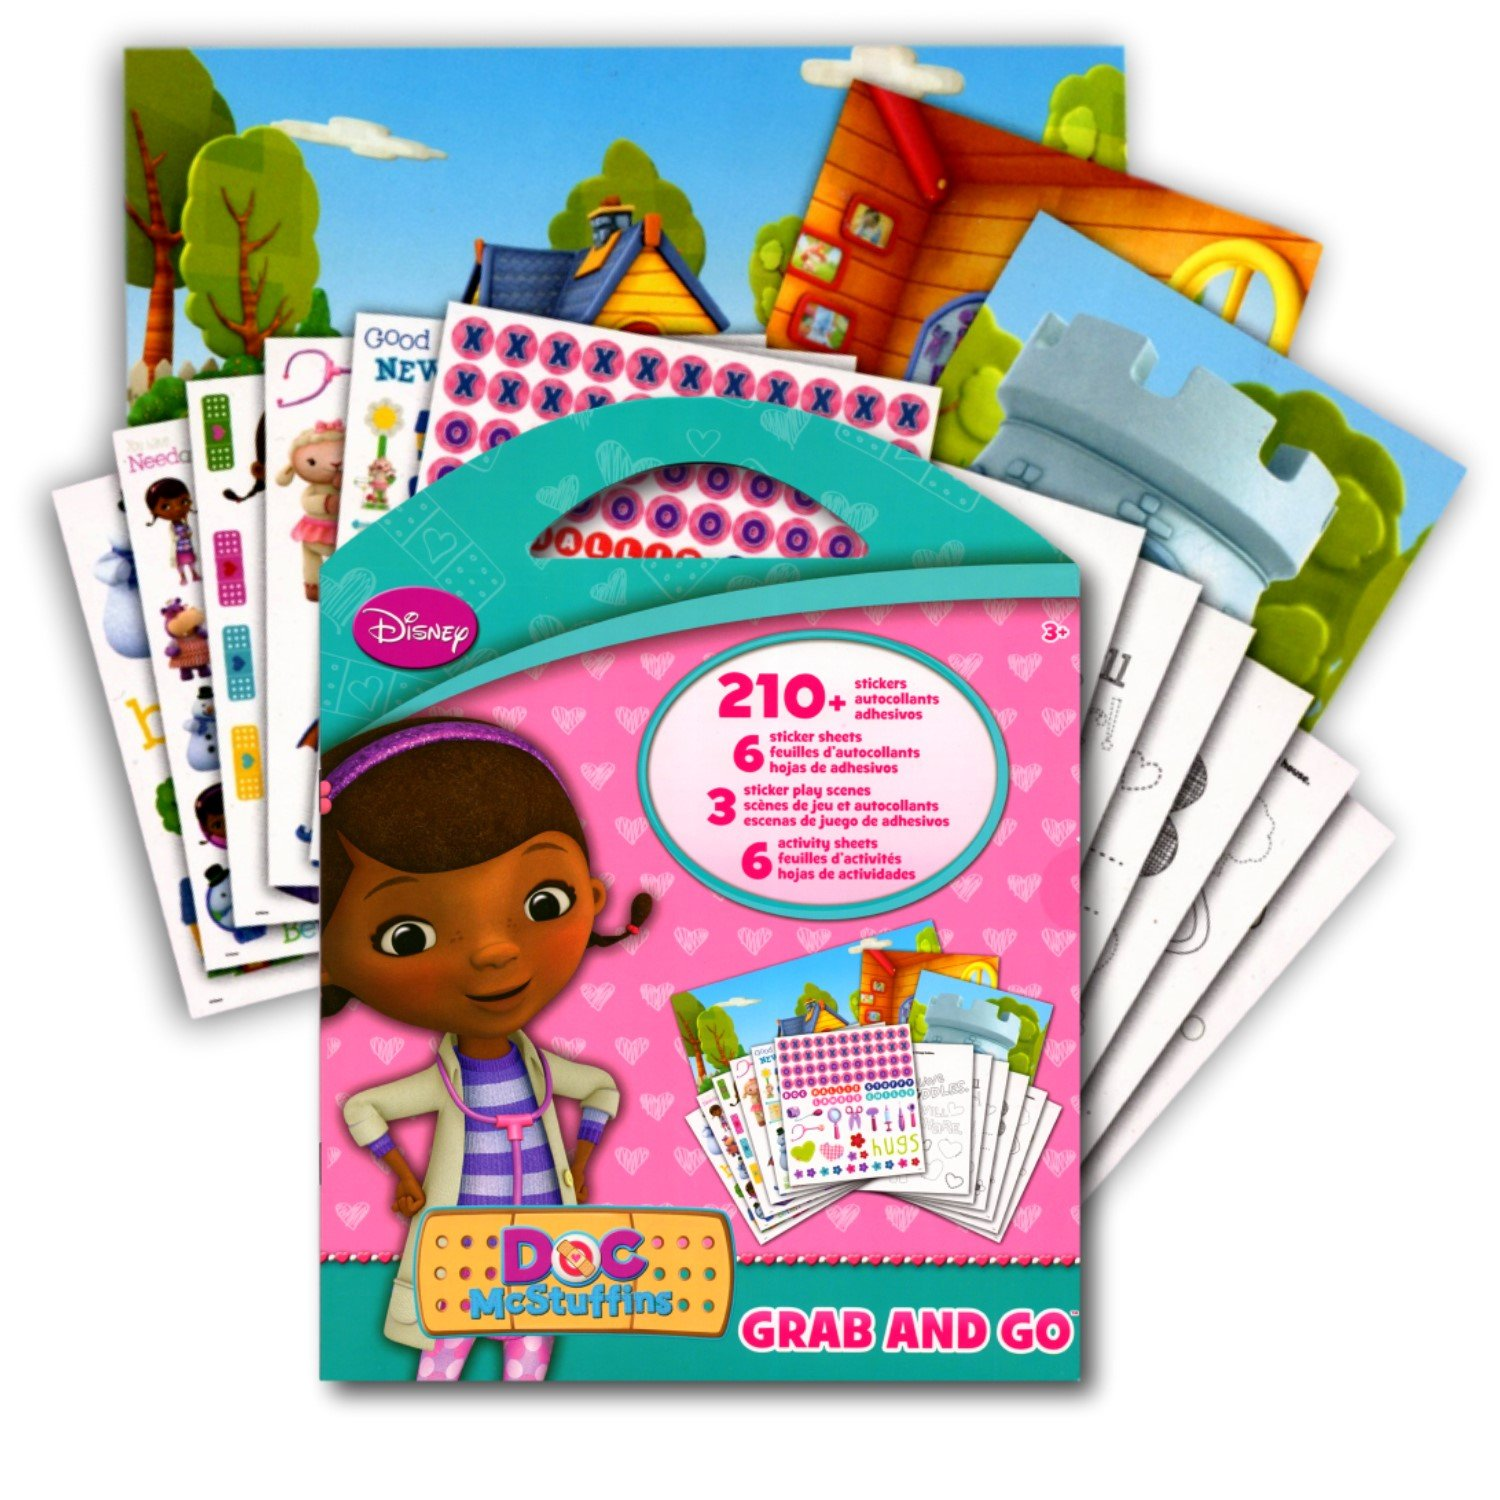 Doc McStuffins Stickers Activity Coloring Book ( 6 Large Sticker Sheets, 3 Sticker Play Scenes, 6 Coloring Activity Sheets)